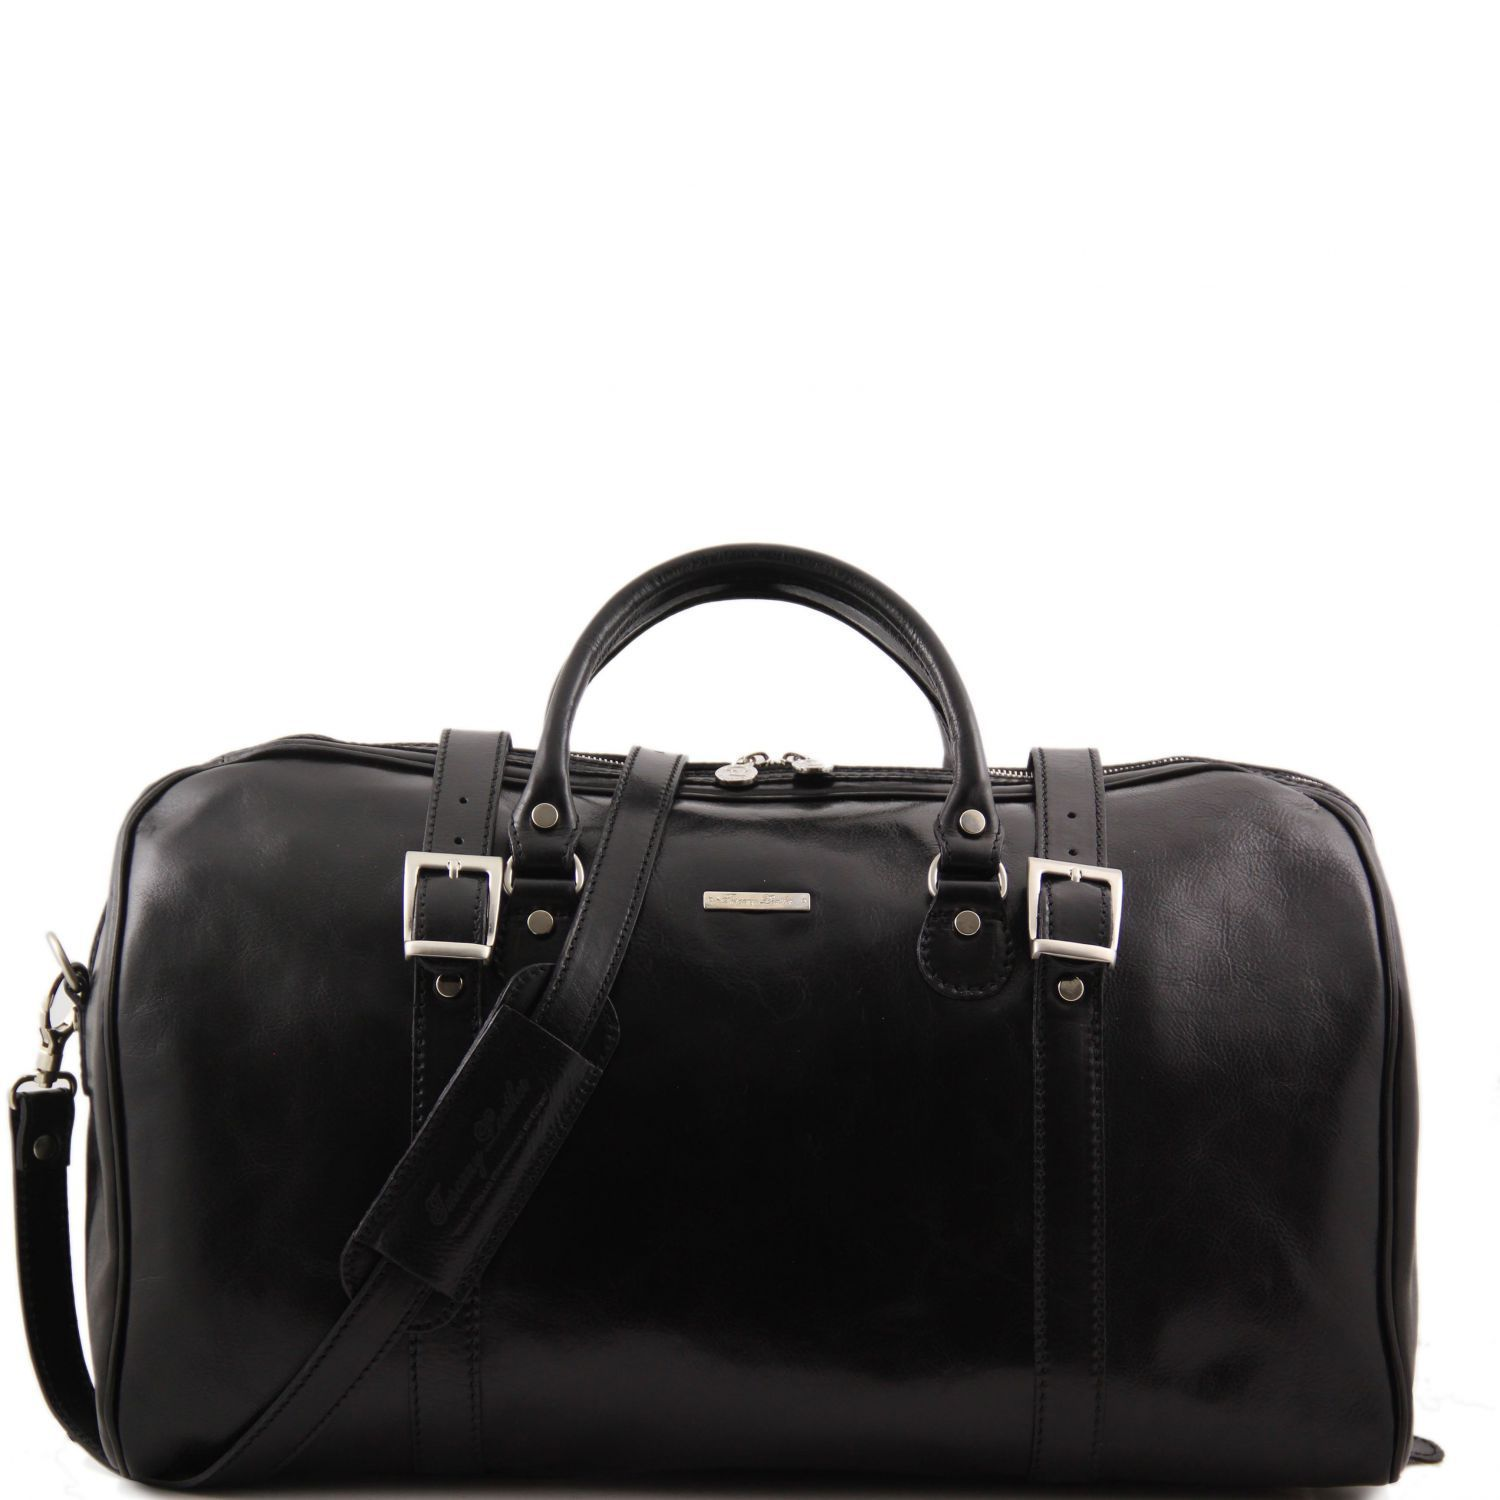 Tuscany Leather 'Berlin' Travel Leather Duffle Bag-Large Duffle Bag Tuscany Leather Black